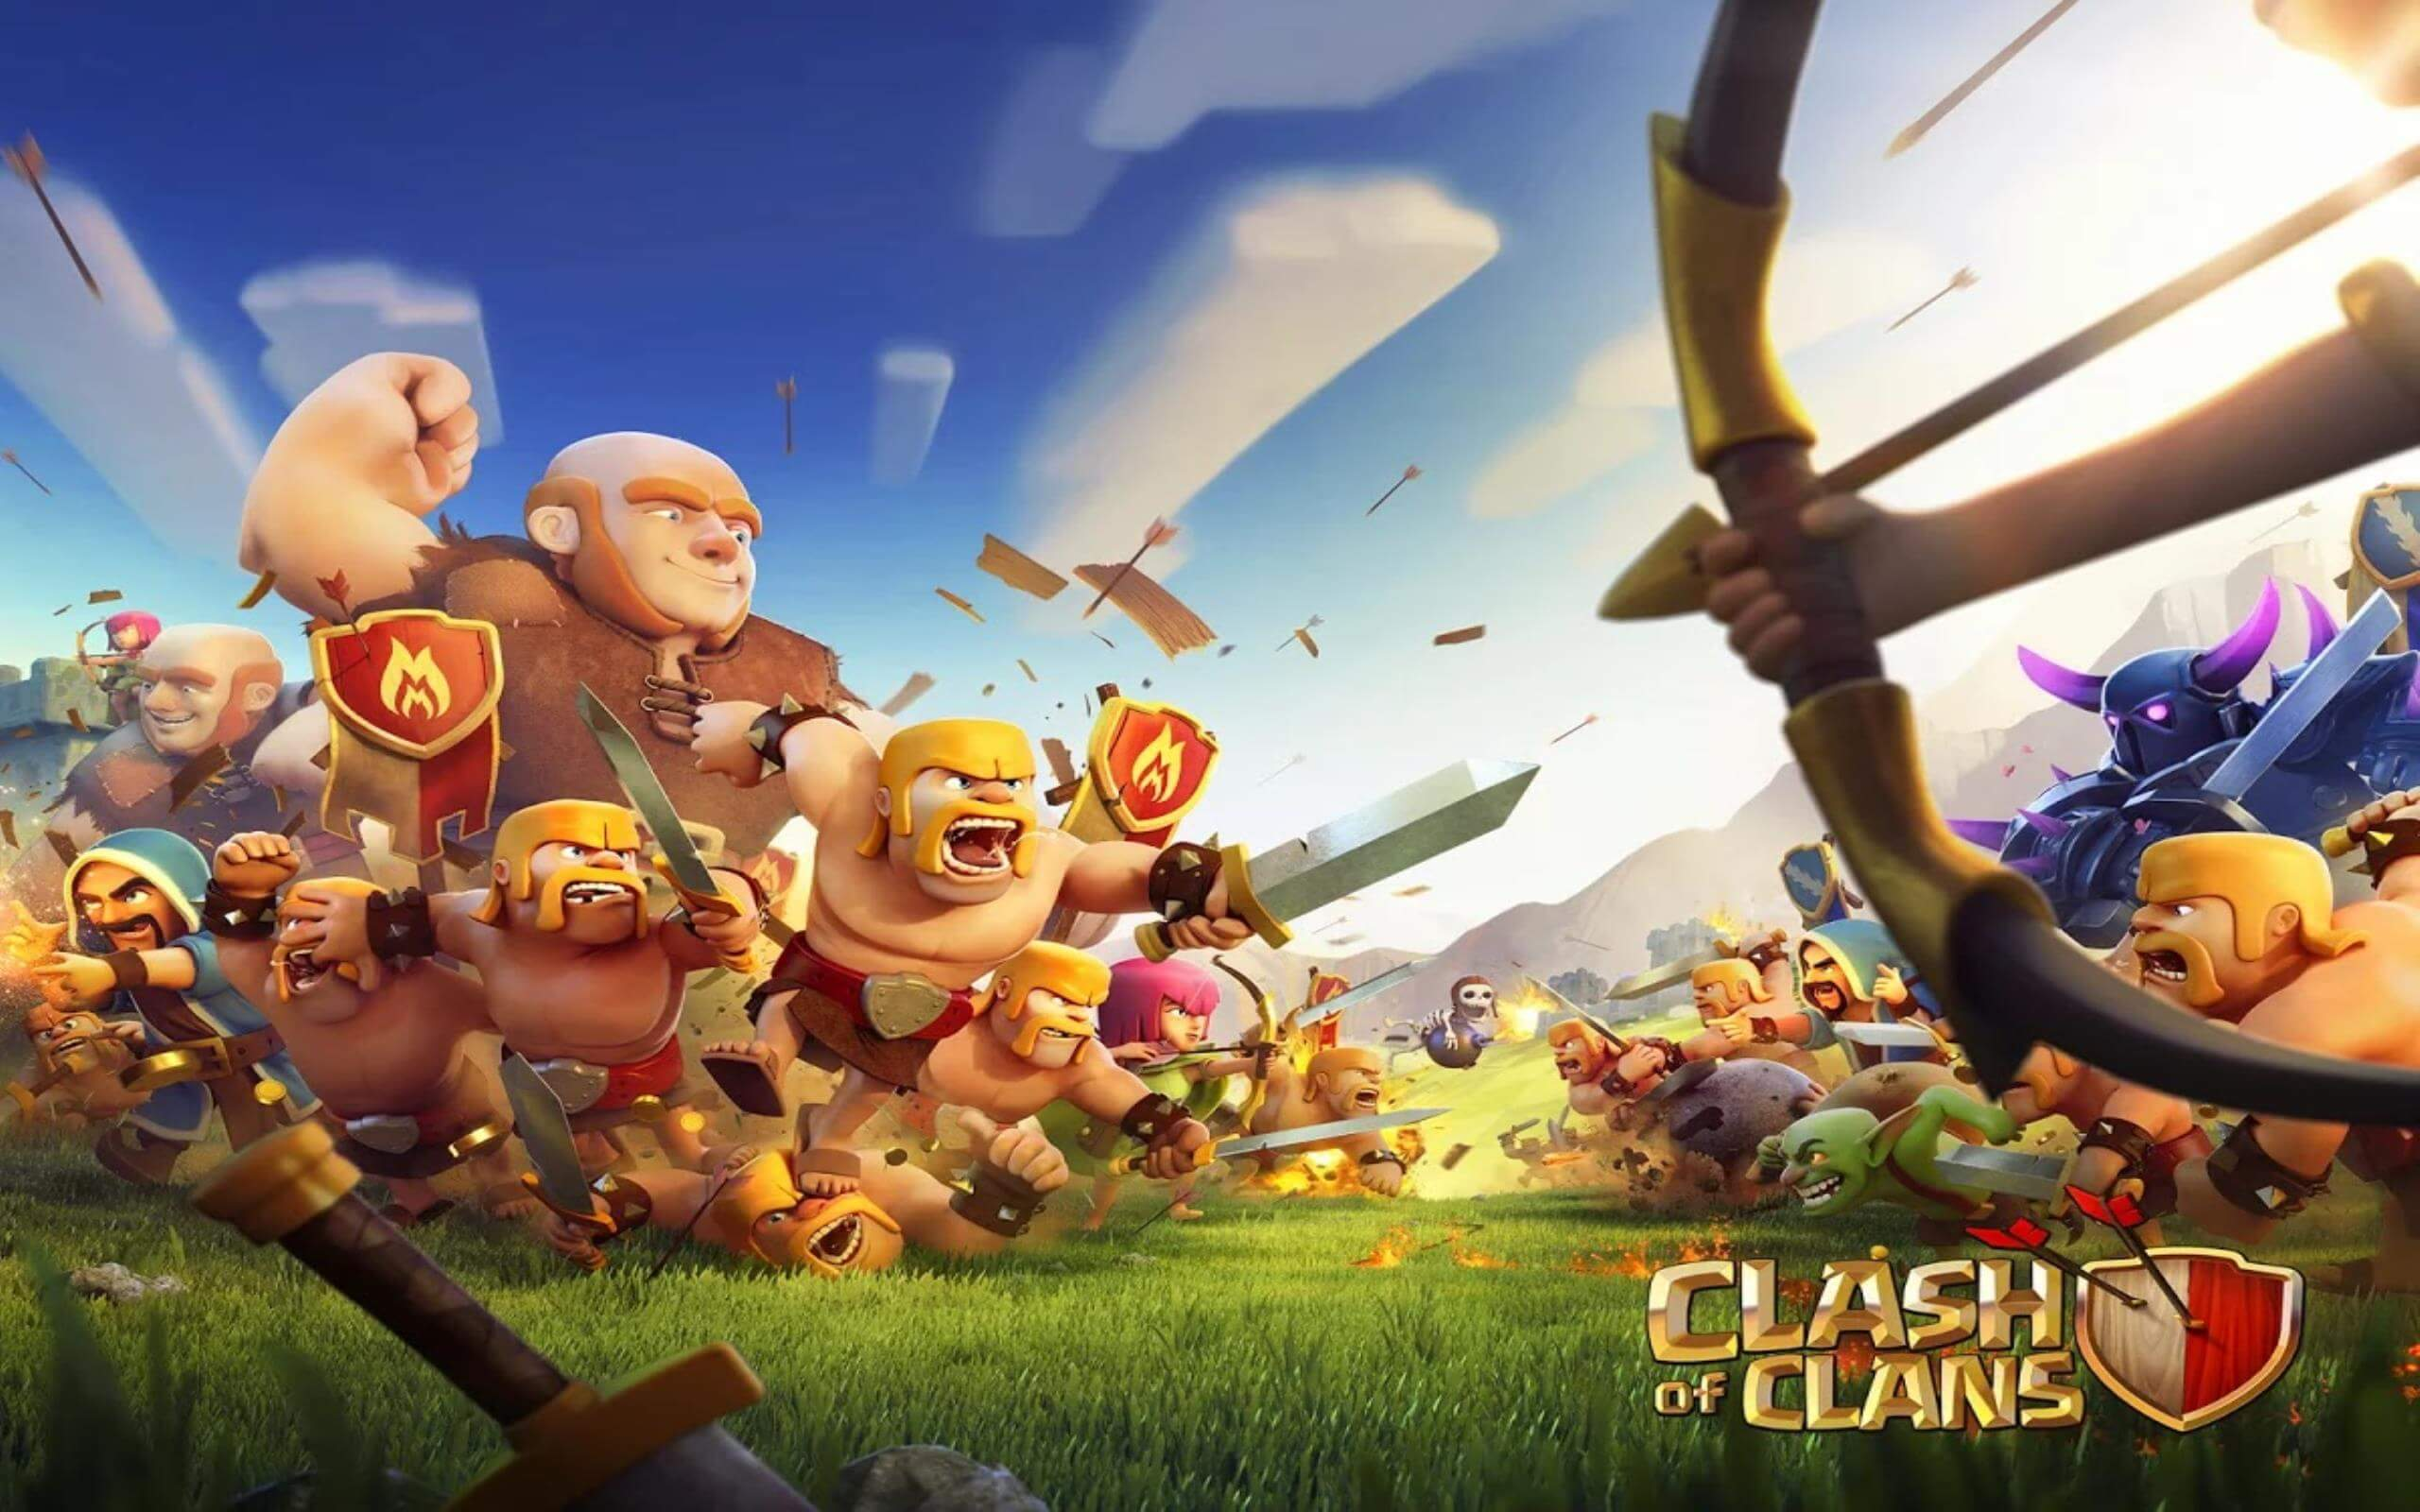 Clash Of Clans Wallpapers and Photos 4K Full HD Everest Hill 2560x1600